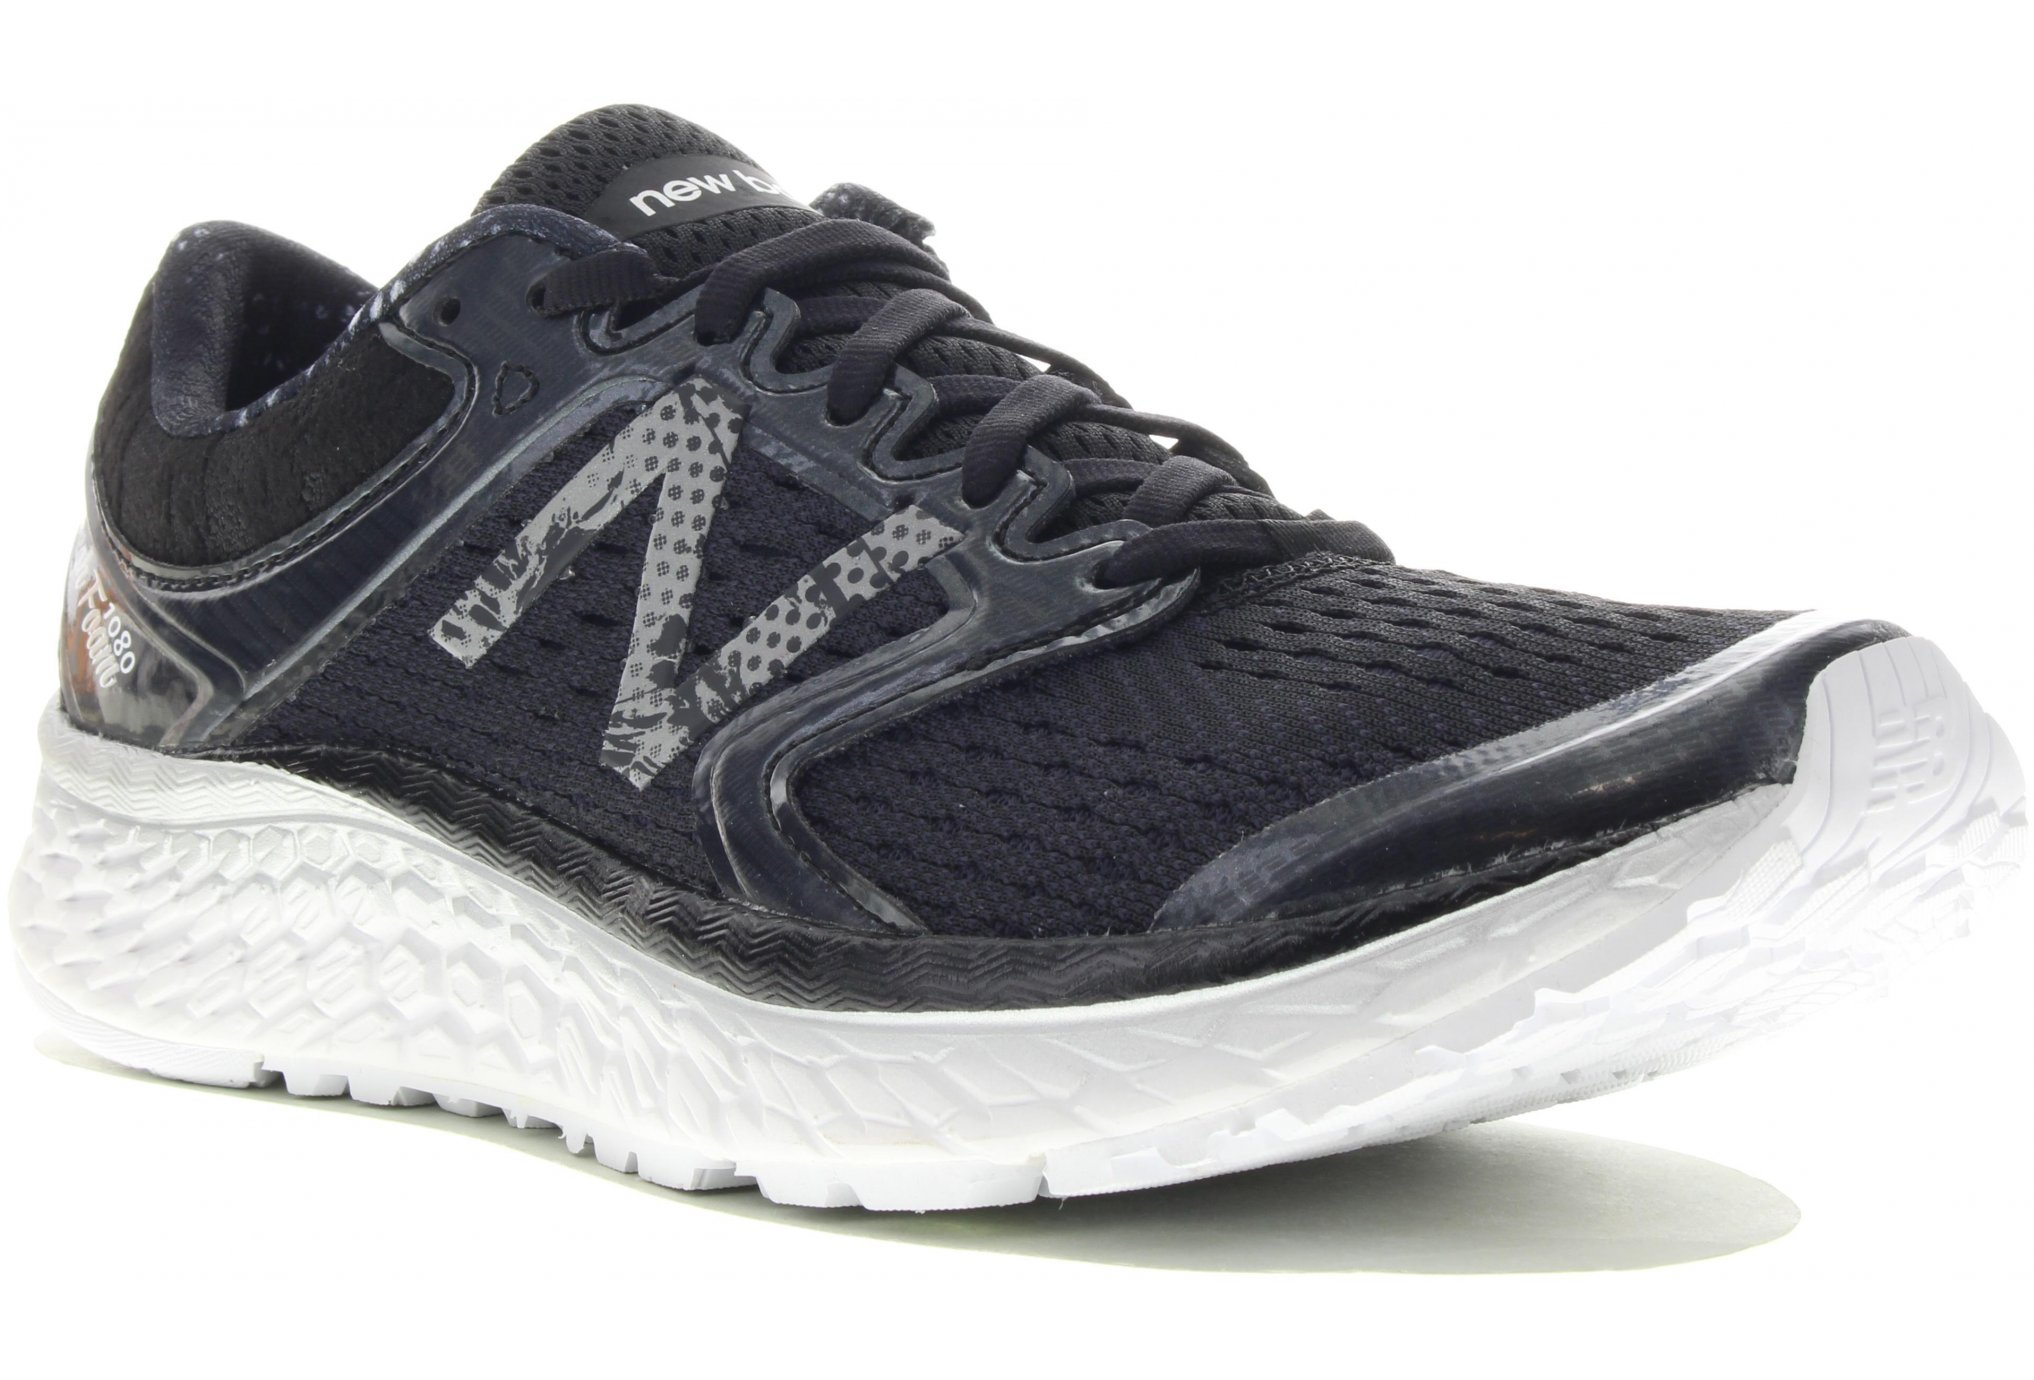 New Balance Fresh Foam W 1080 V7 - B déstockage running